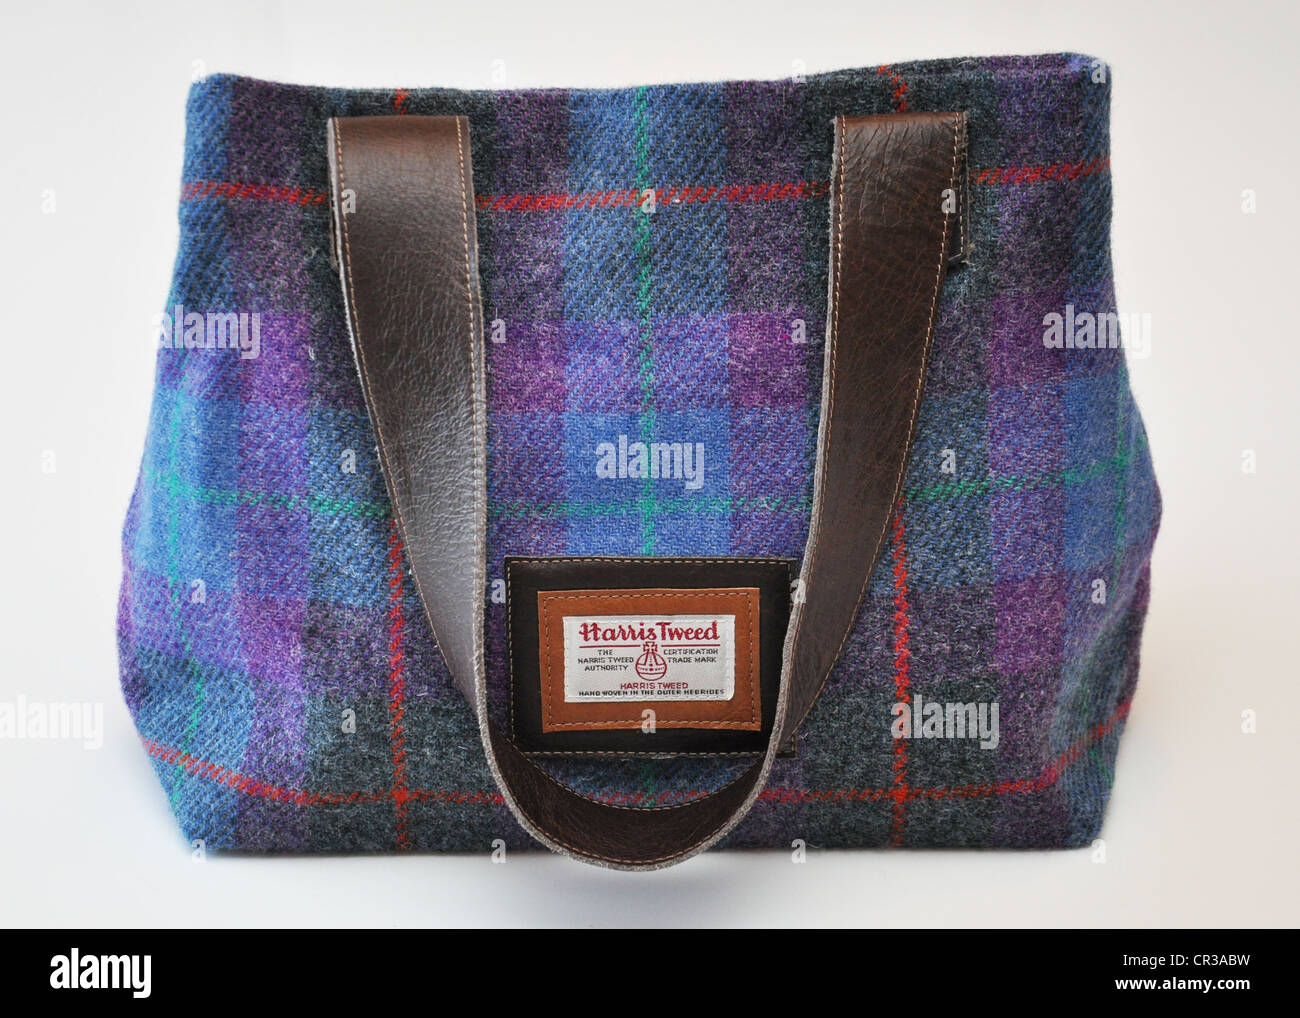 2fa6b2bcaf61 Blue and purple Harris Tweed bag with leather handle against a white  background - Stock Image